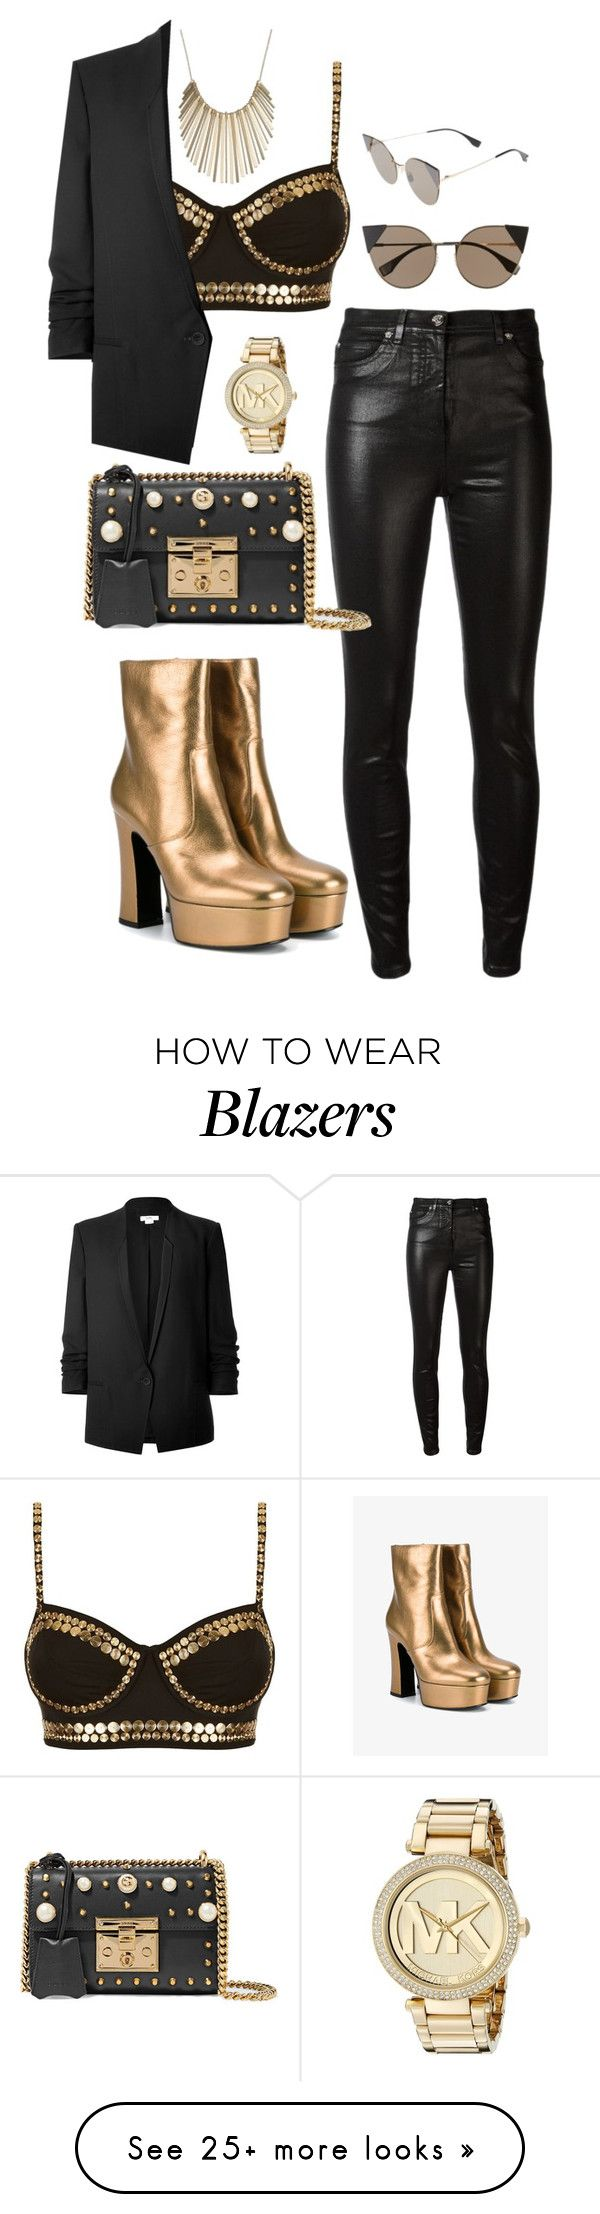 """Untitled #644"" by rockinstyles on Polyvore featuring Norma Kamali, Helmut Lang, Versace, Fendi, Gucci, Michael Kors, Yves Saint Laurent and Jennifer Lopez"